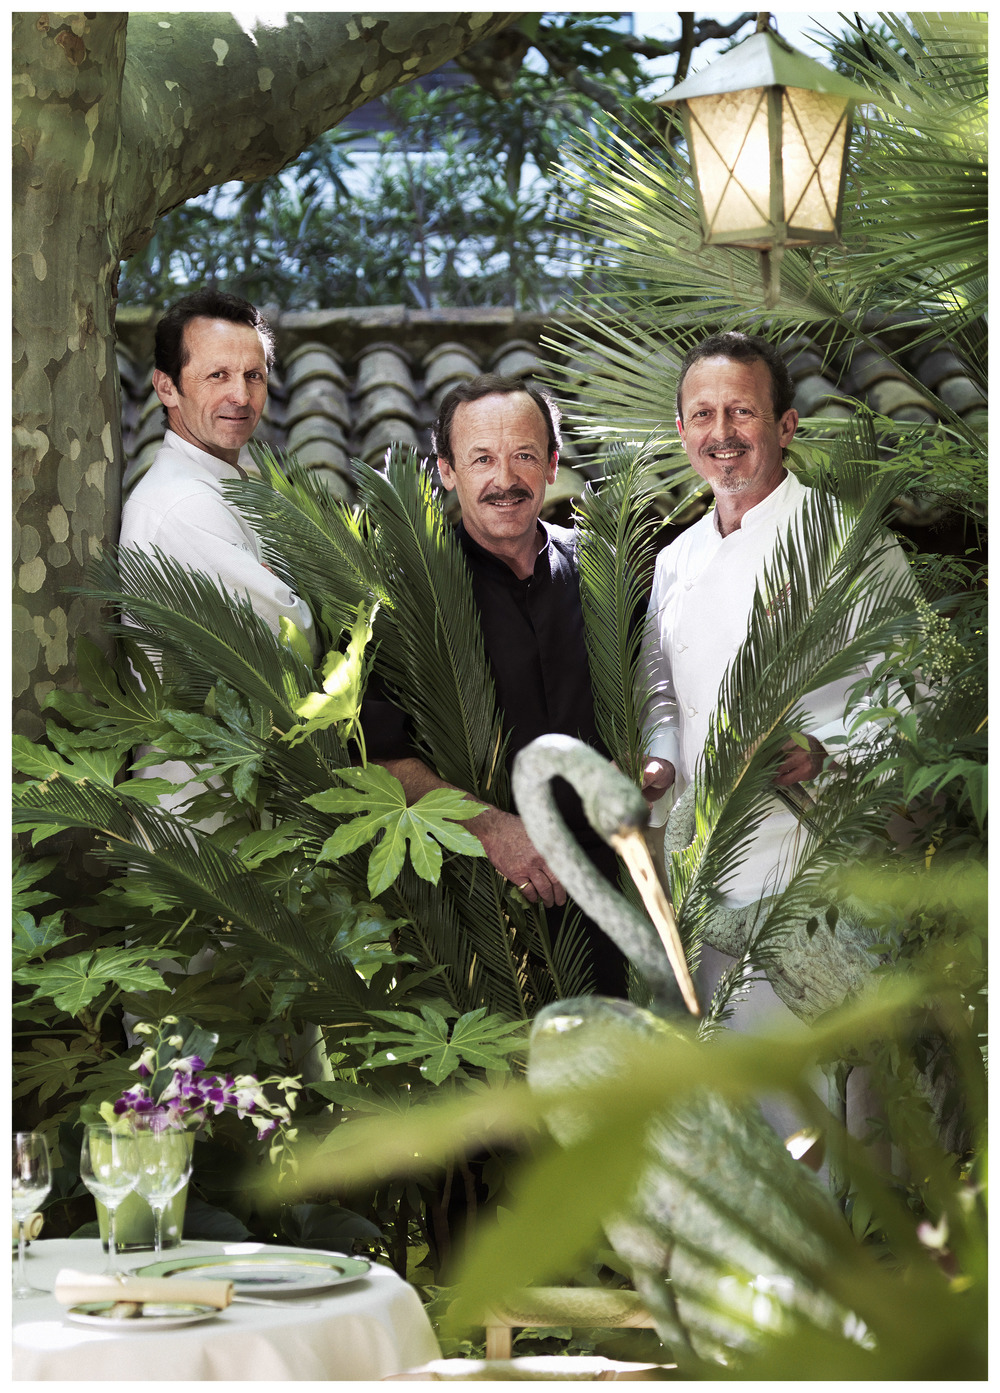 Brother Chef Trio (From left to right) - François, Antoine and Stéphane Raimbault